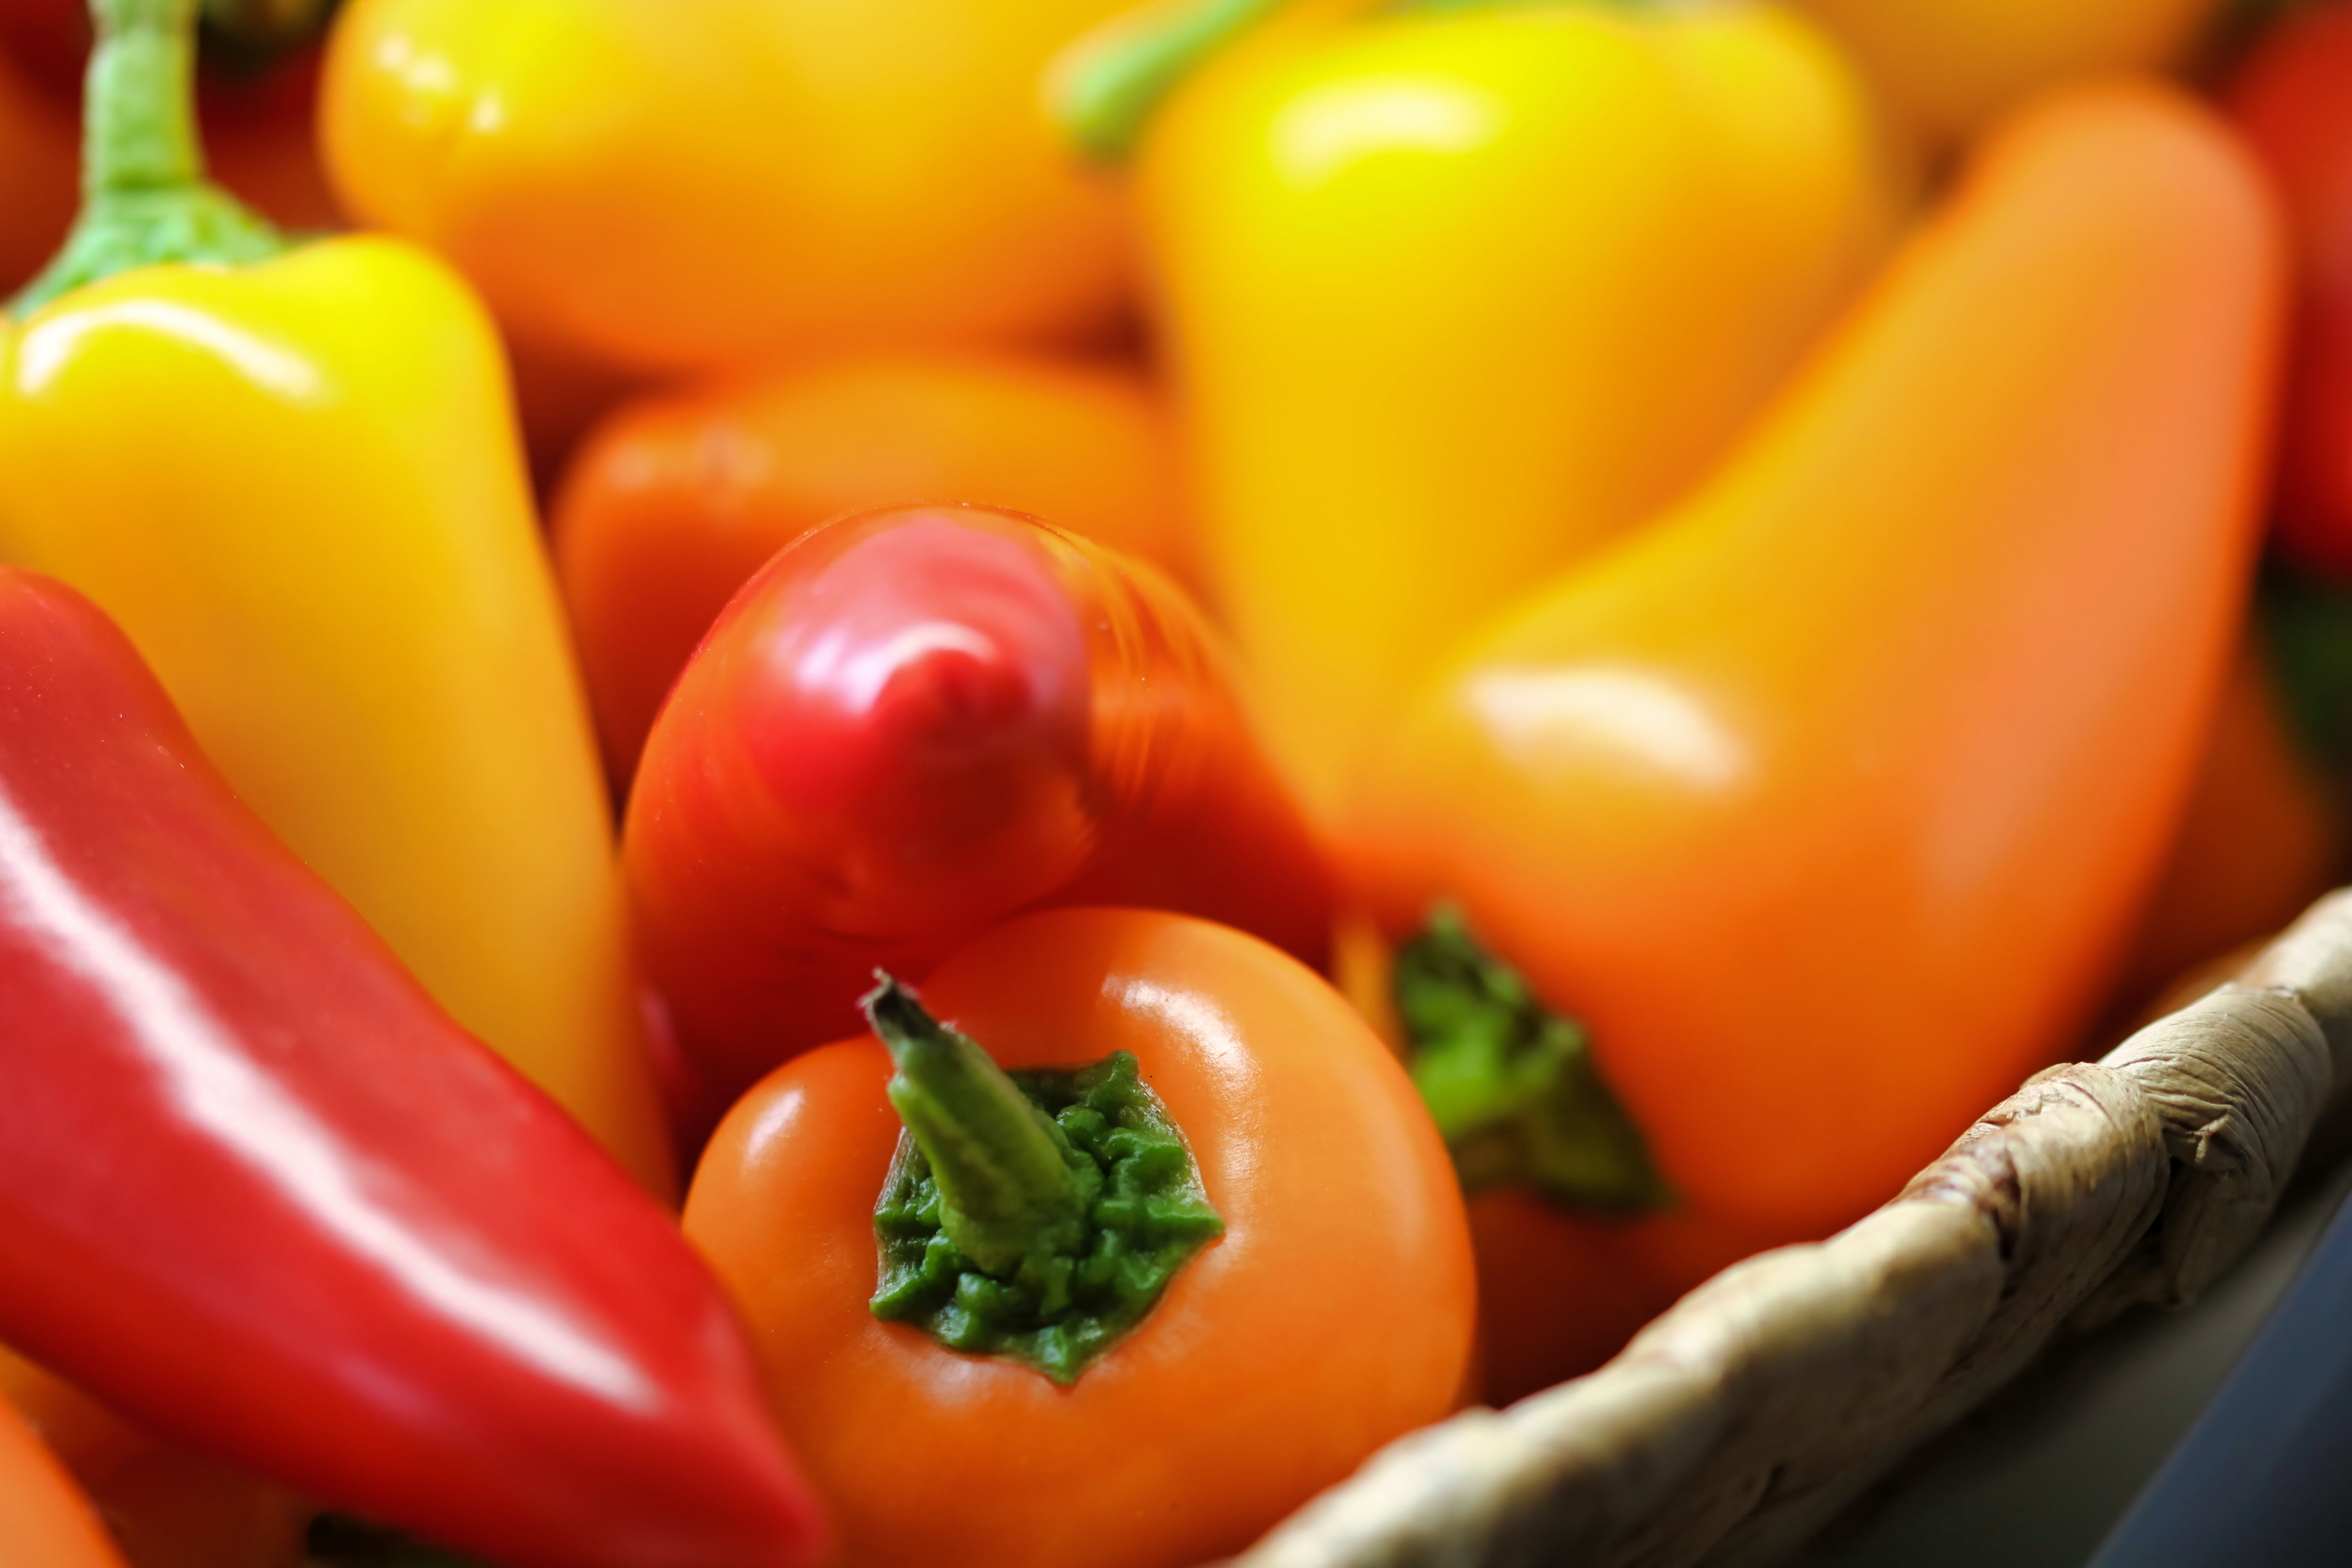 Close-up Photo of Orange and Red Bell Peppers